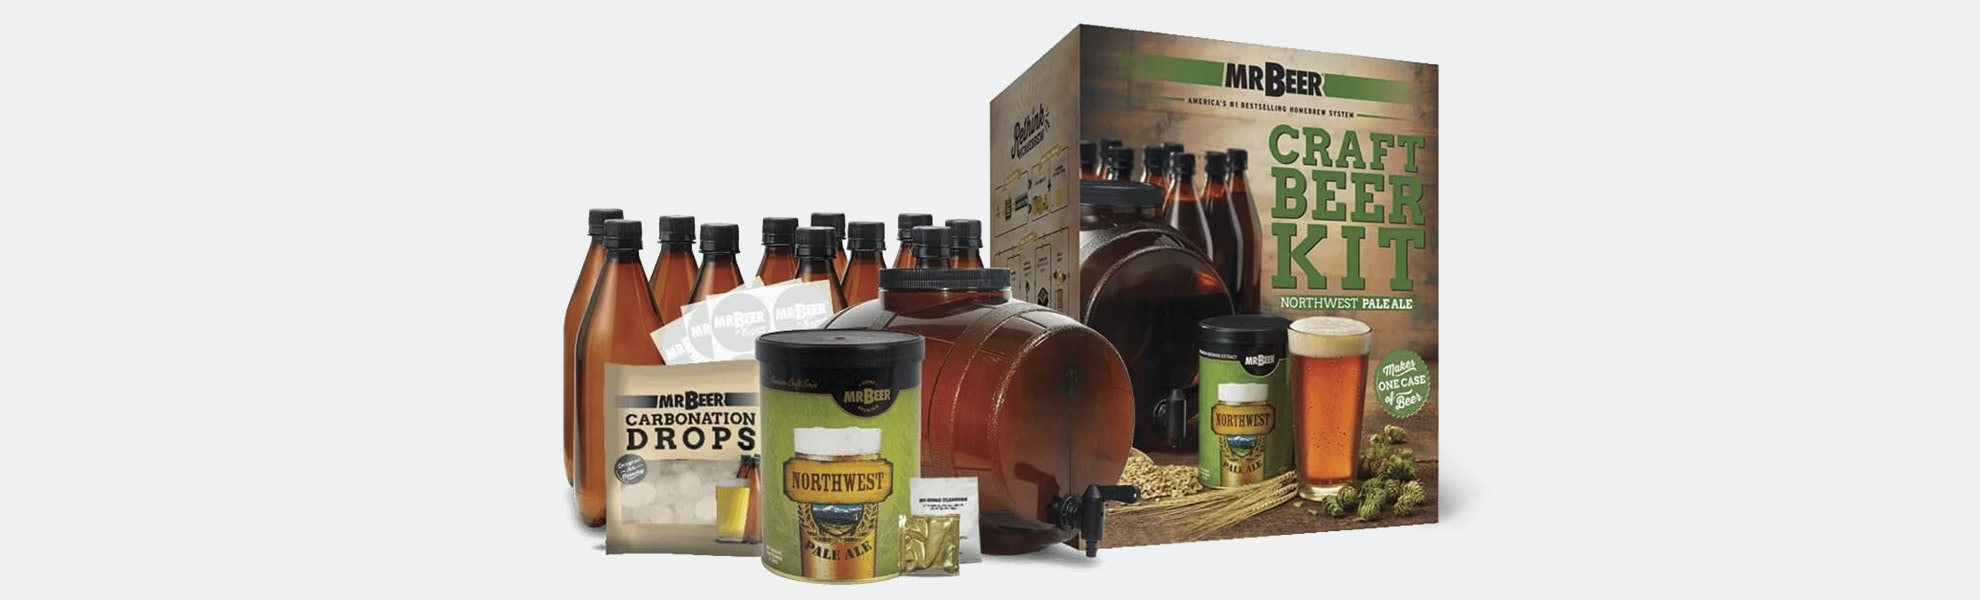 Mr. Beer Complete Craft Brewing Kits